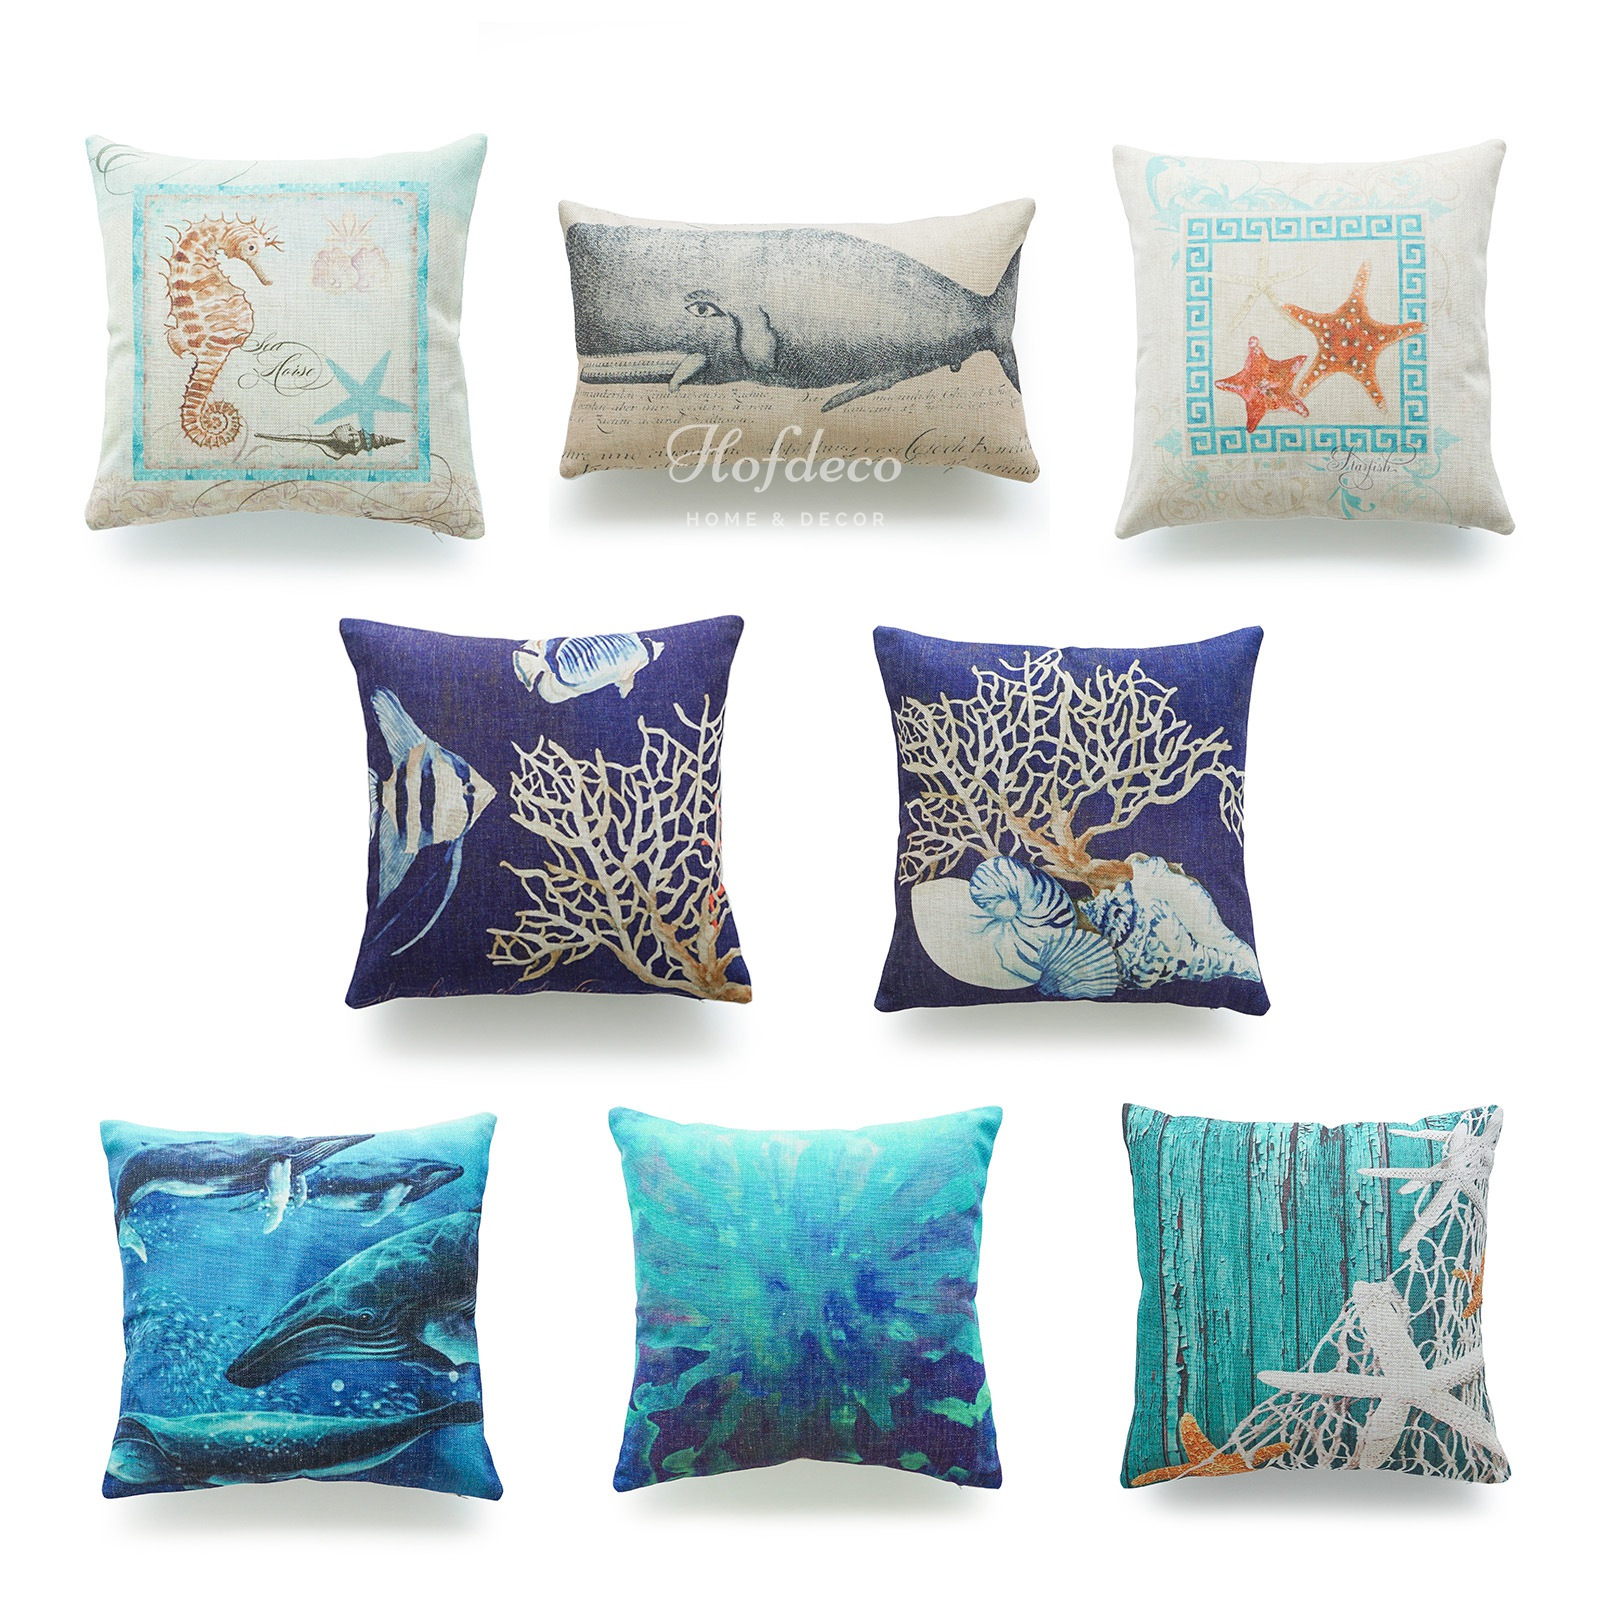 Nautical Sofa Throws Hofdeco Throw Pillow Cover Ocean Coastal Beach Nautical Lumbar